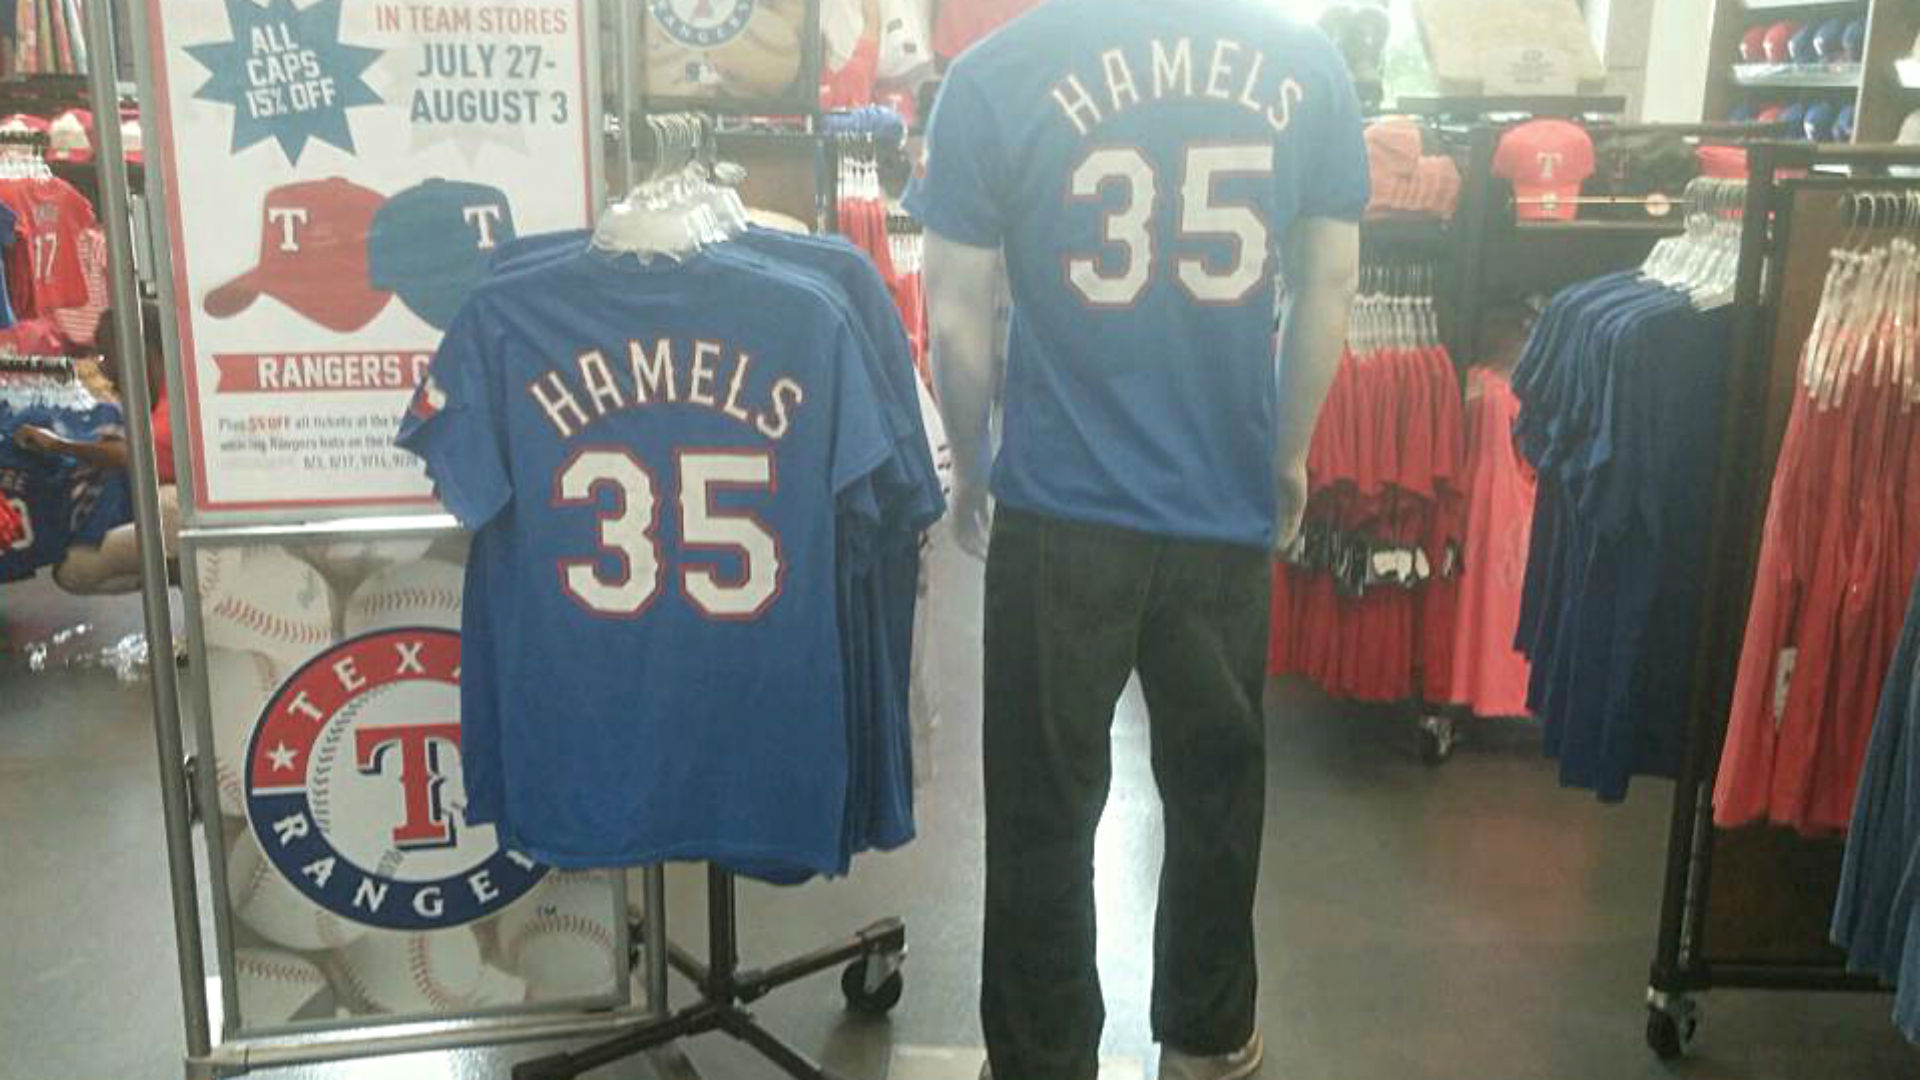 That was quick: Rangers already have Hamels merchandise on sale